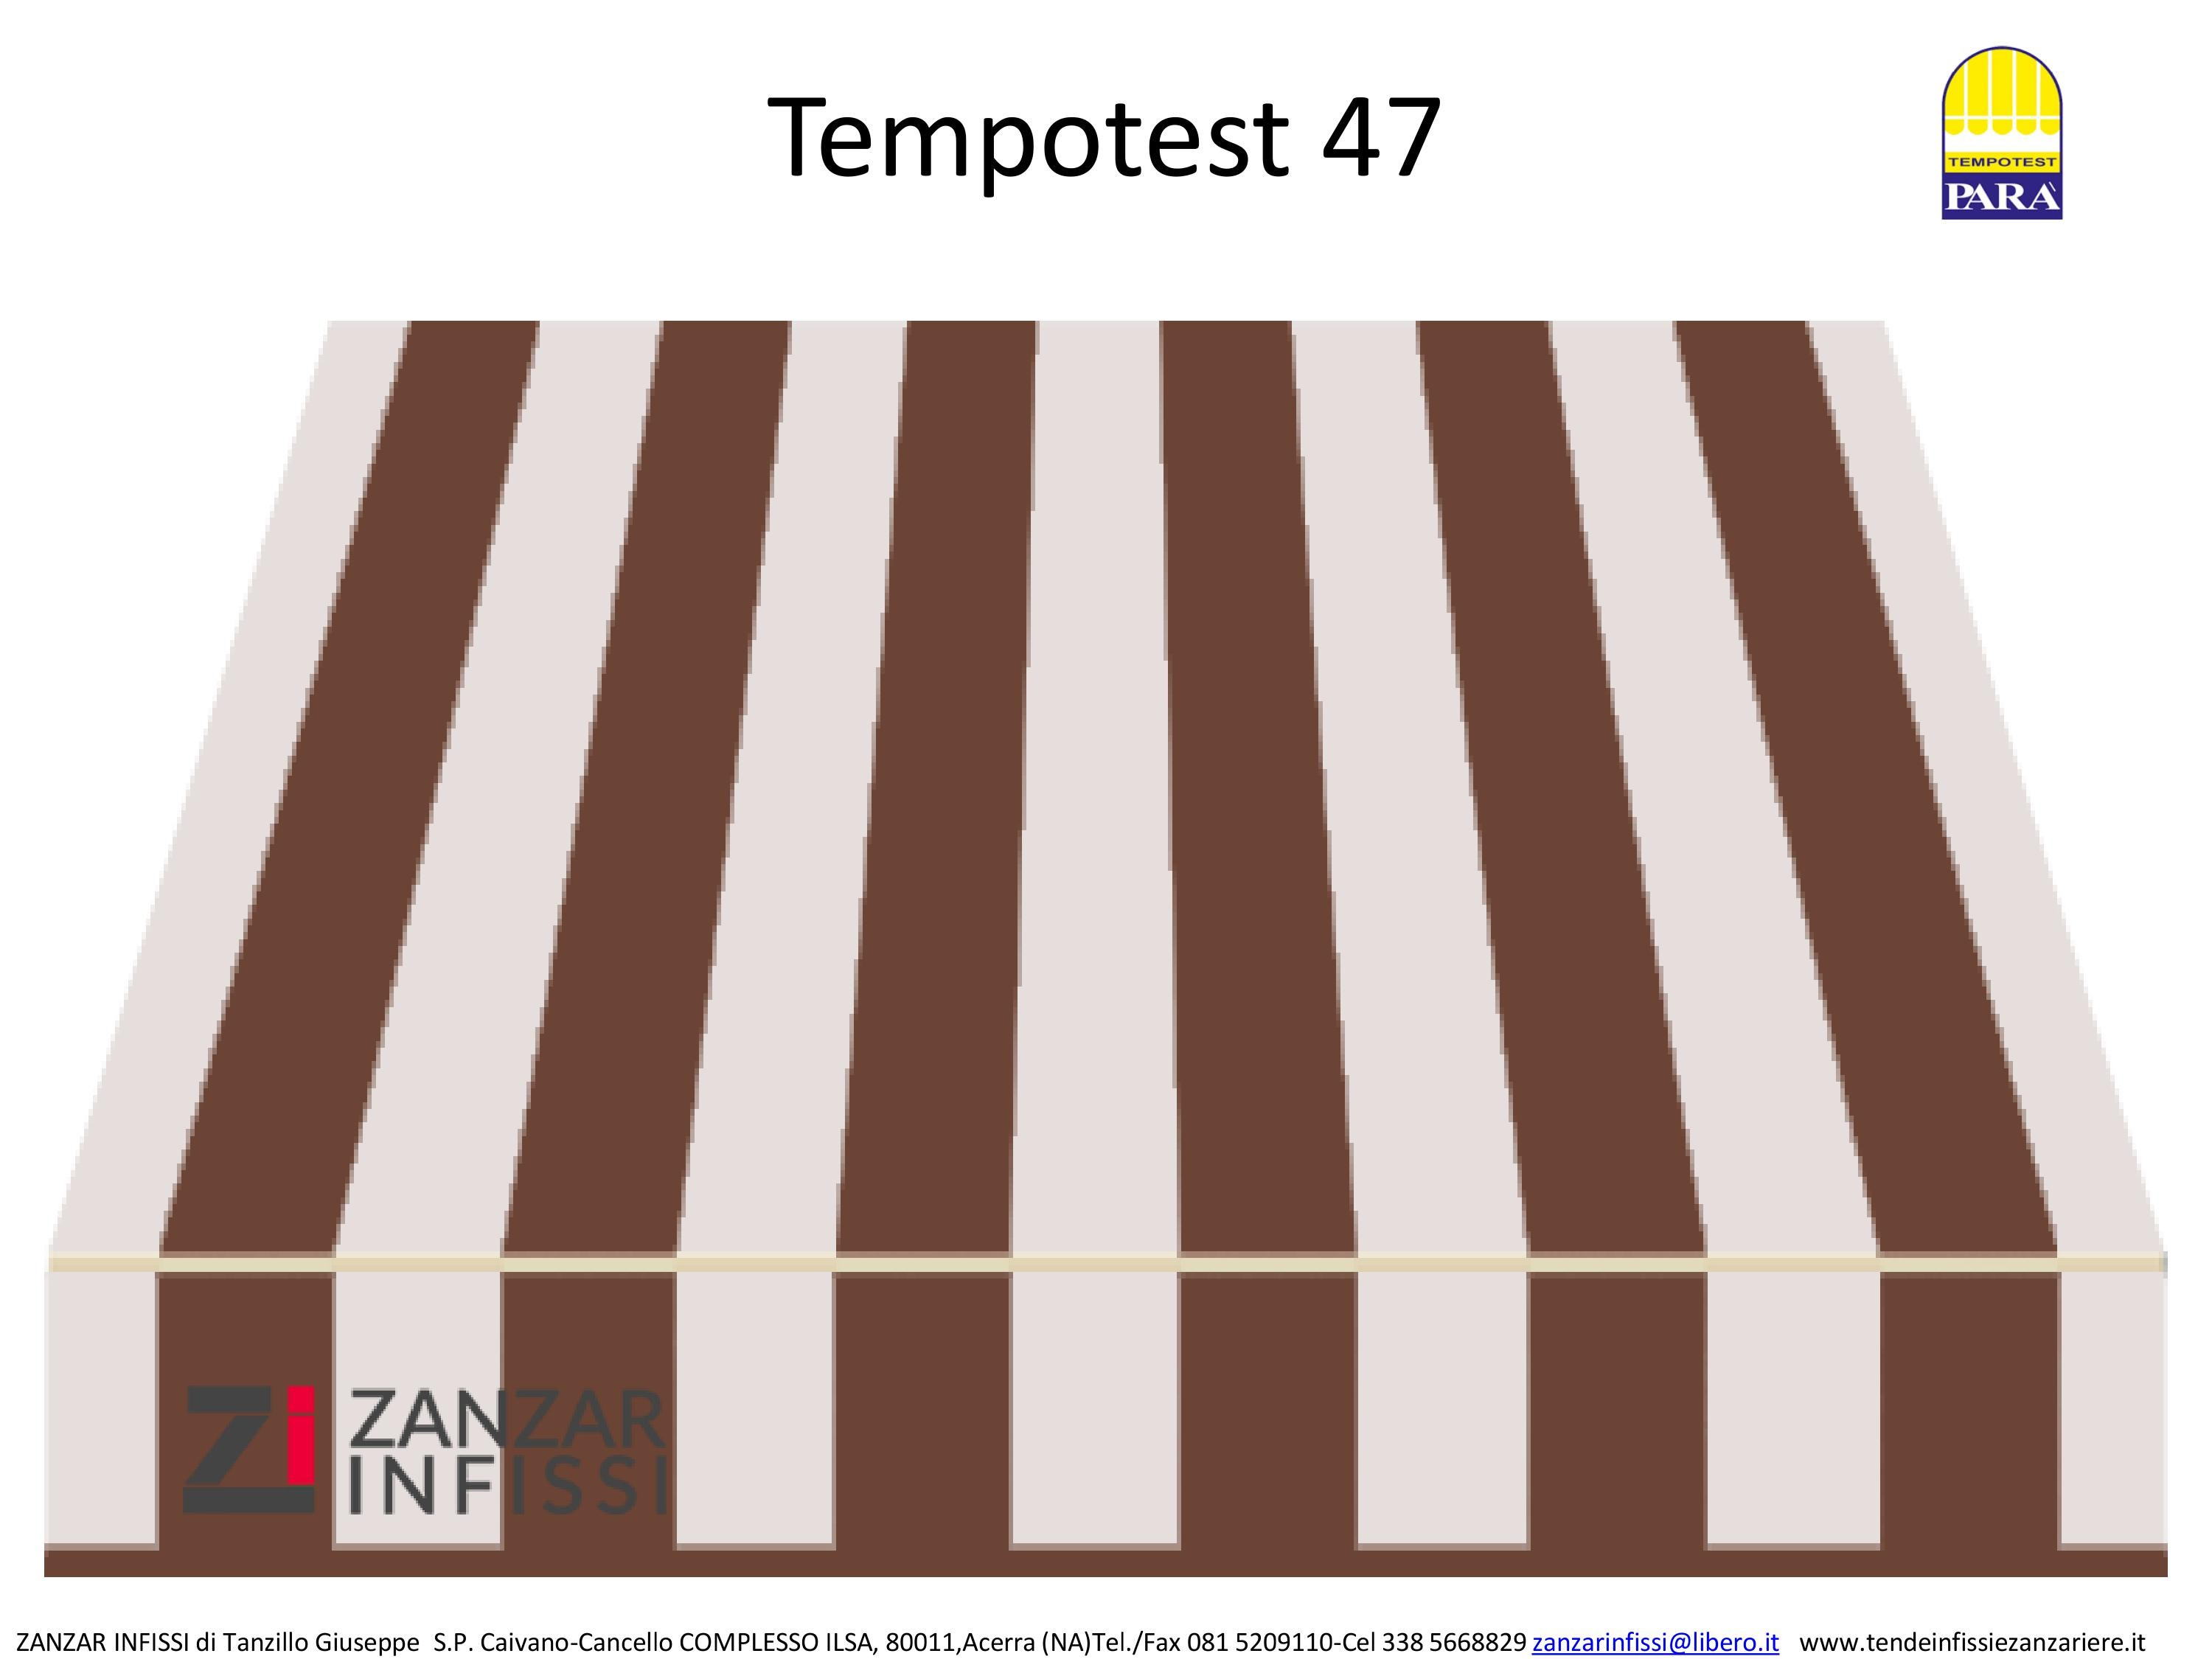 Tempotest 47